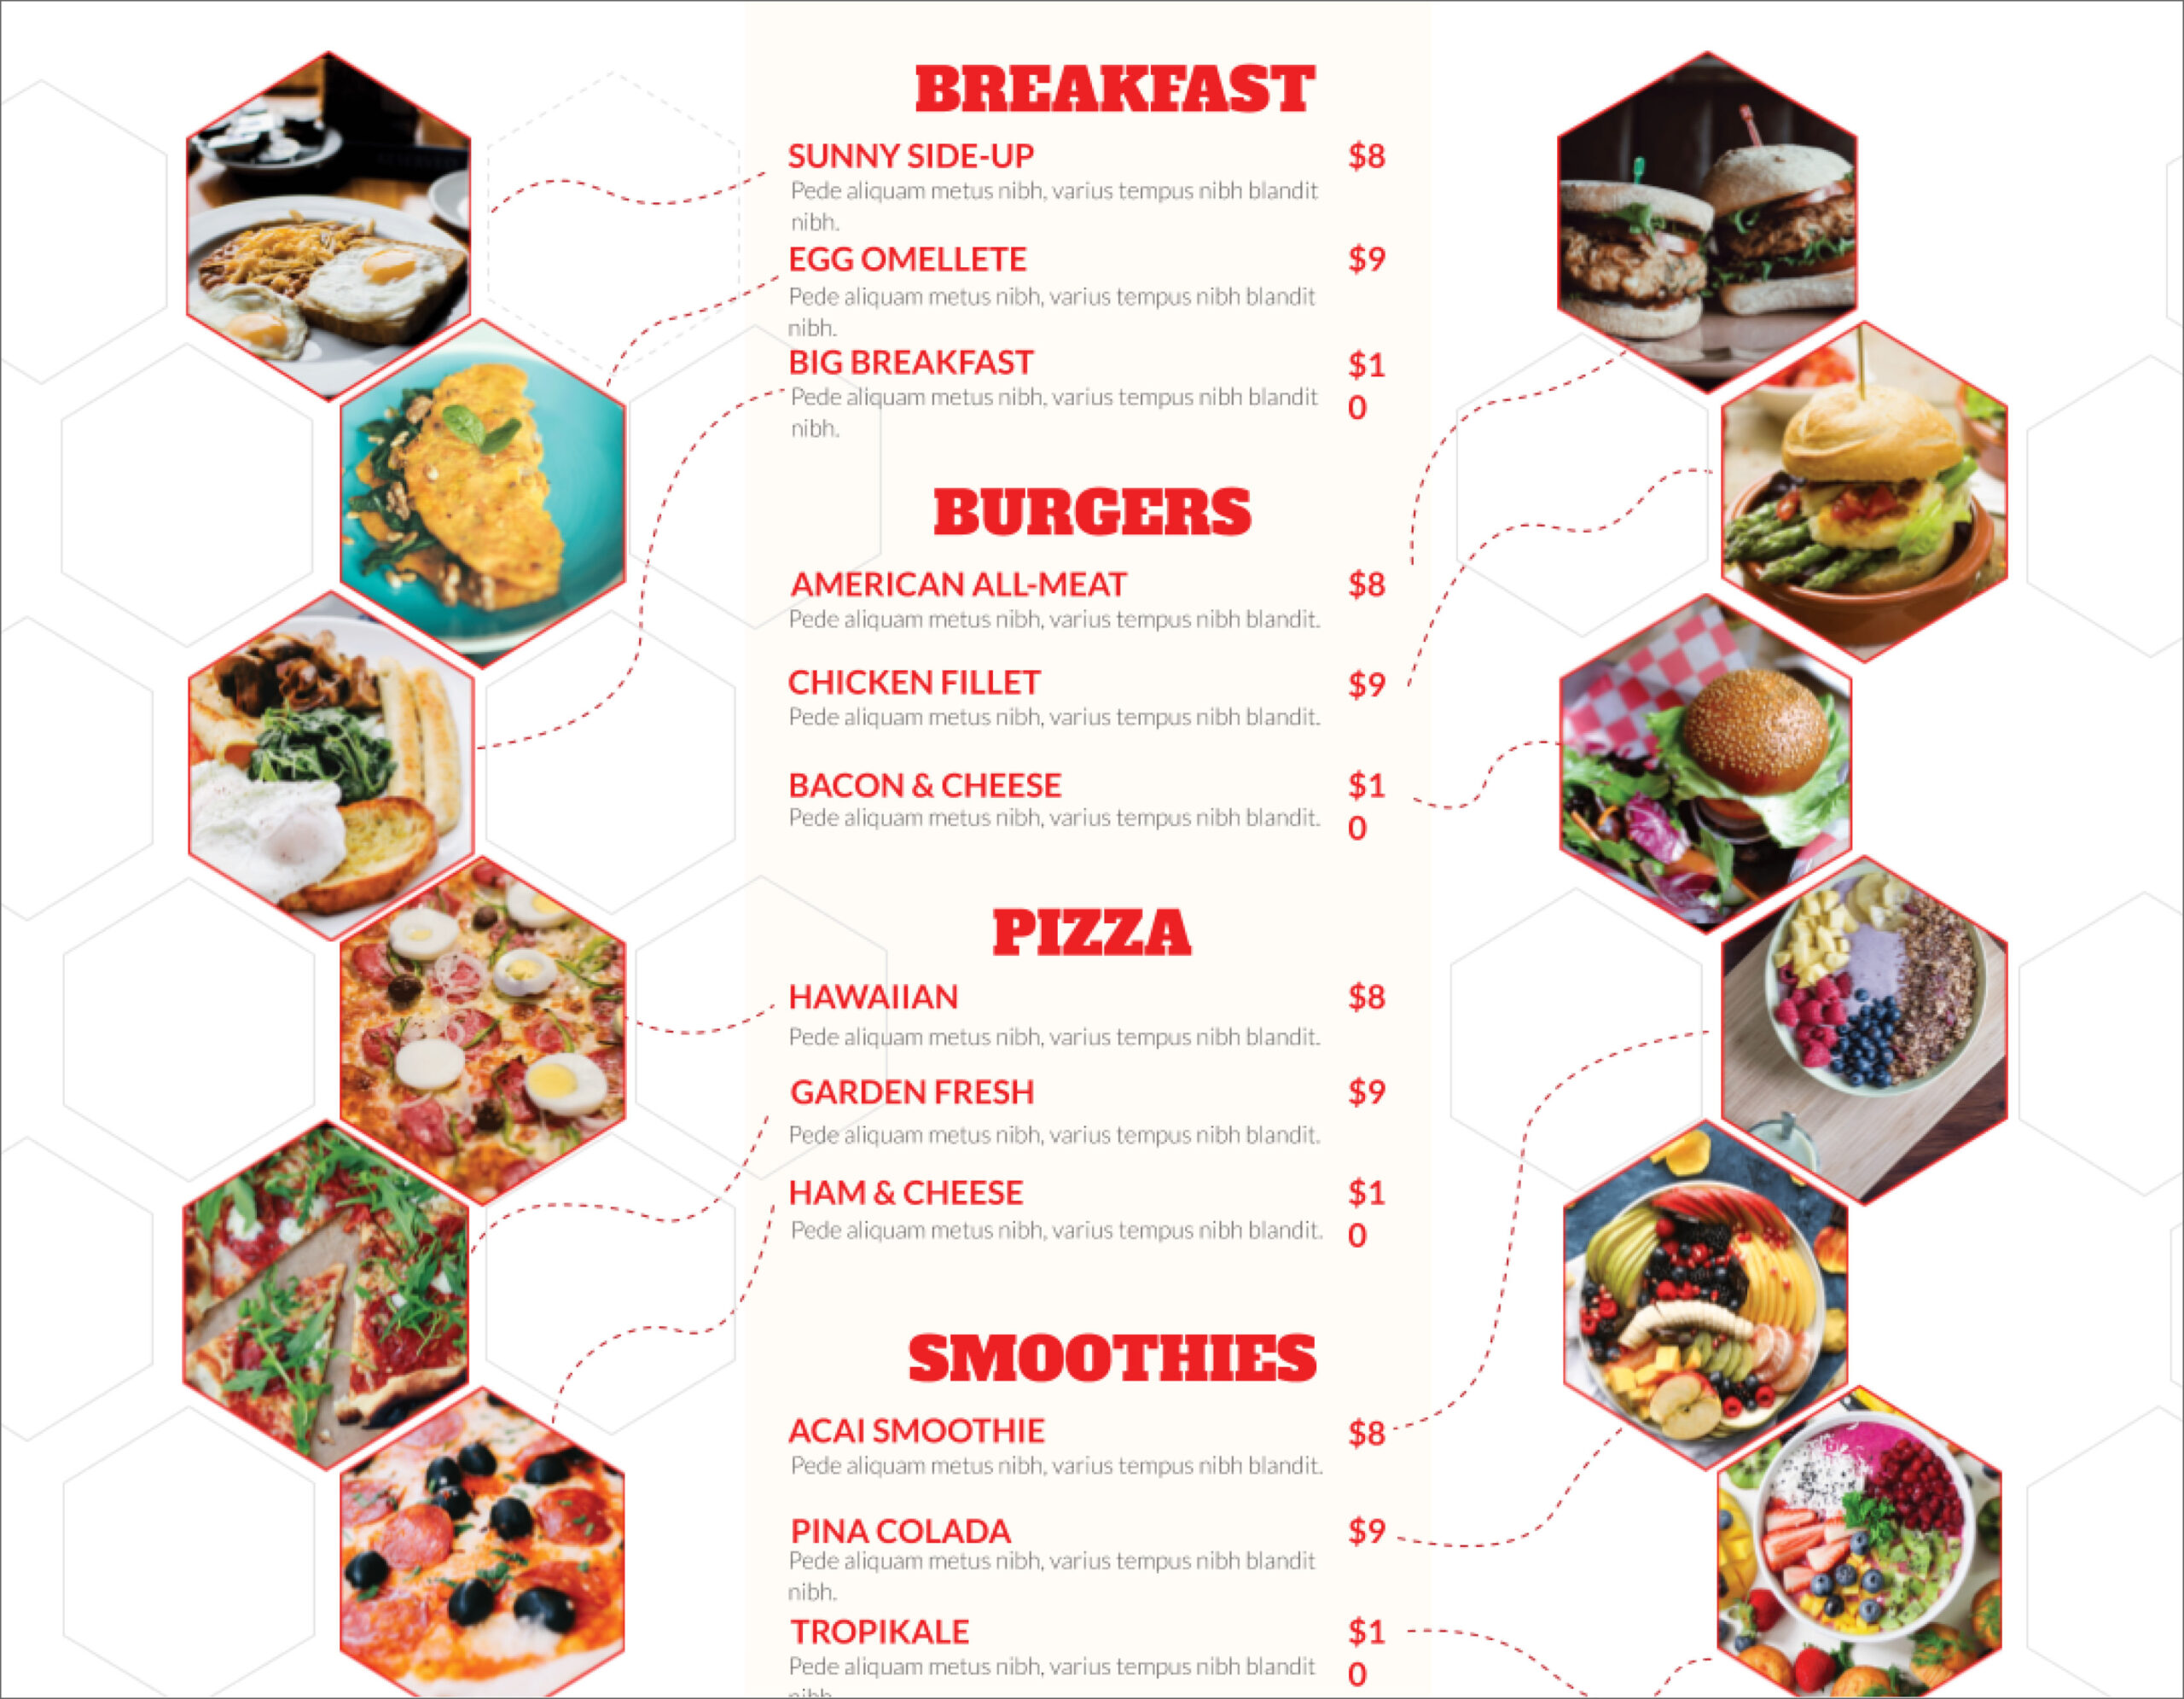 32 Free Simple Menu Templates For Restaurants, Cafes, And Pertaining To Menu Template Google Docs